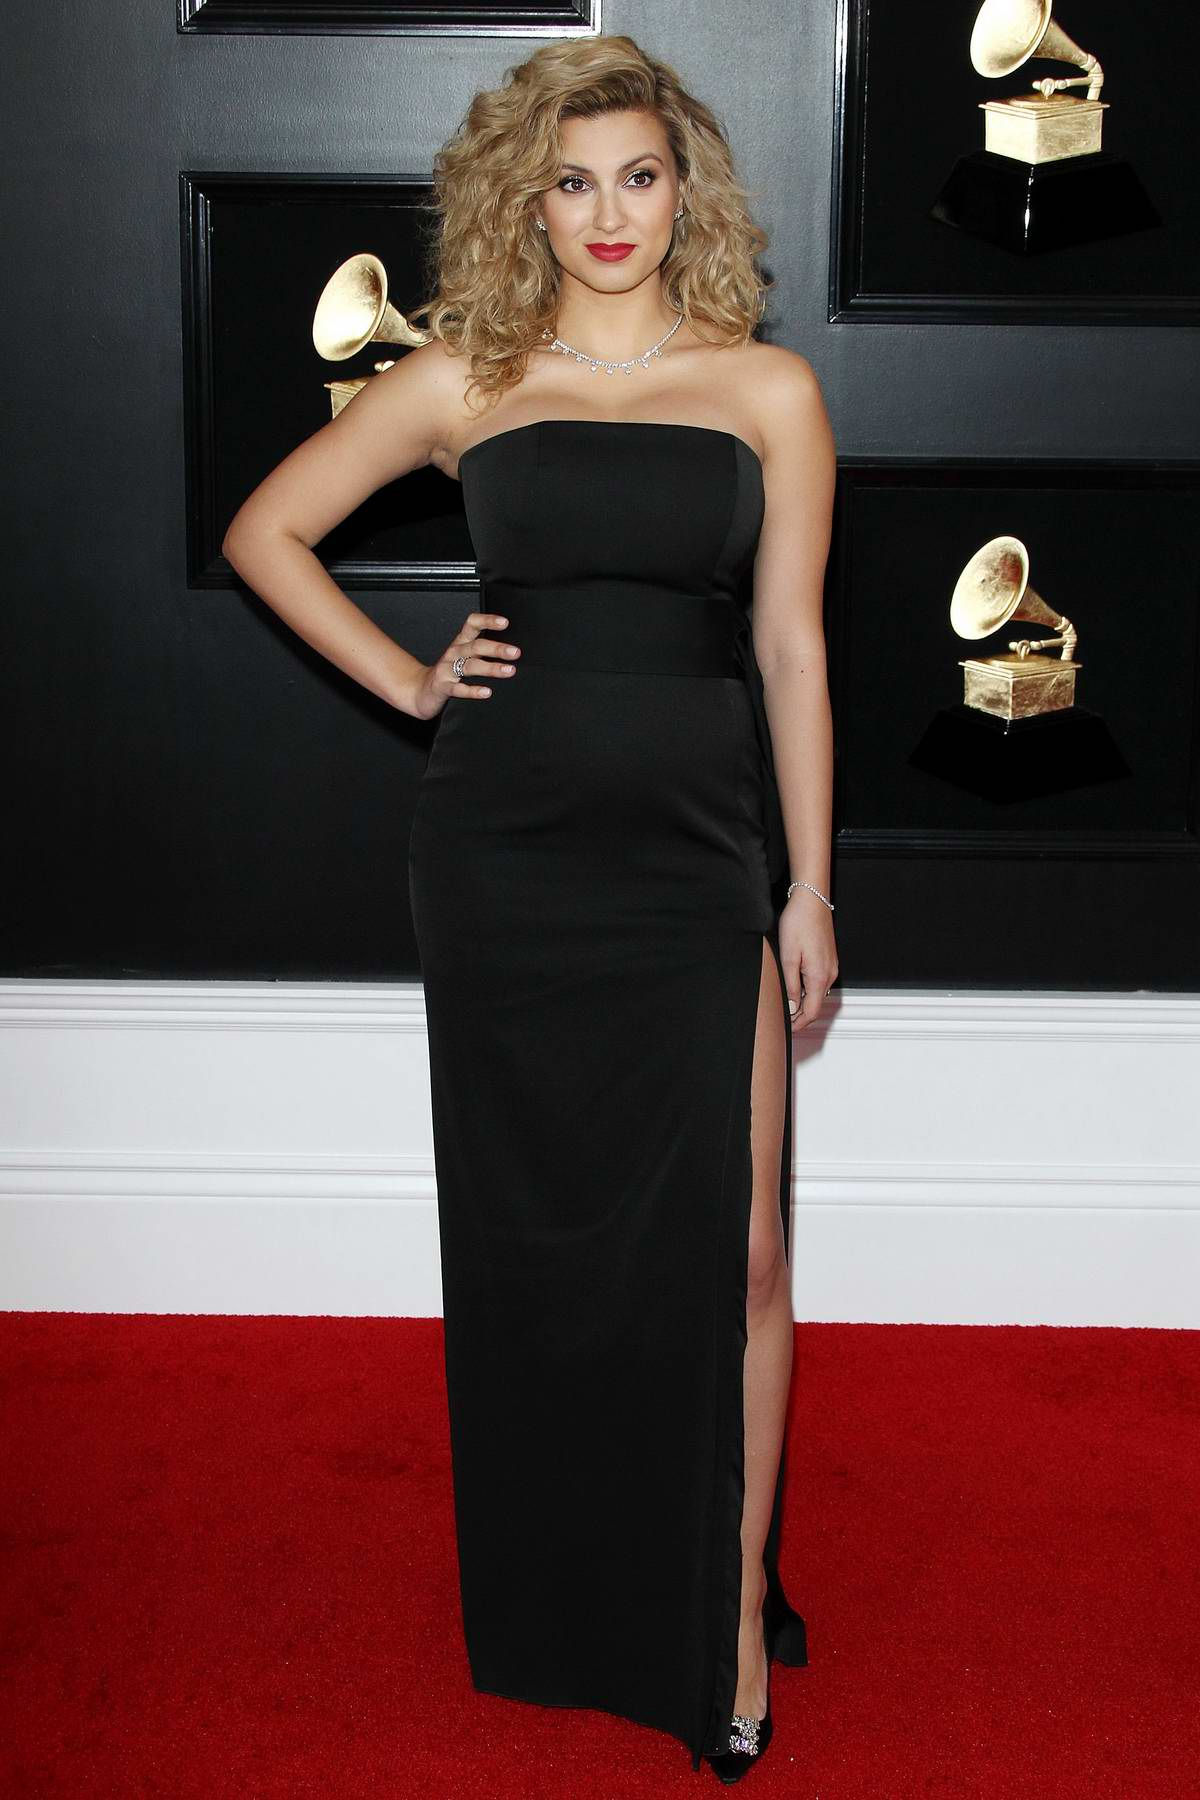 Tori Kelly attends the 61st Annual GRAMMY Awards (2019 GRAMMYs) at Staples Center in Los Angeles